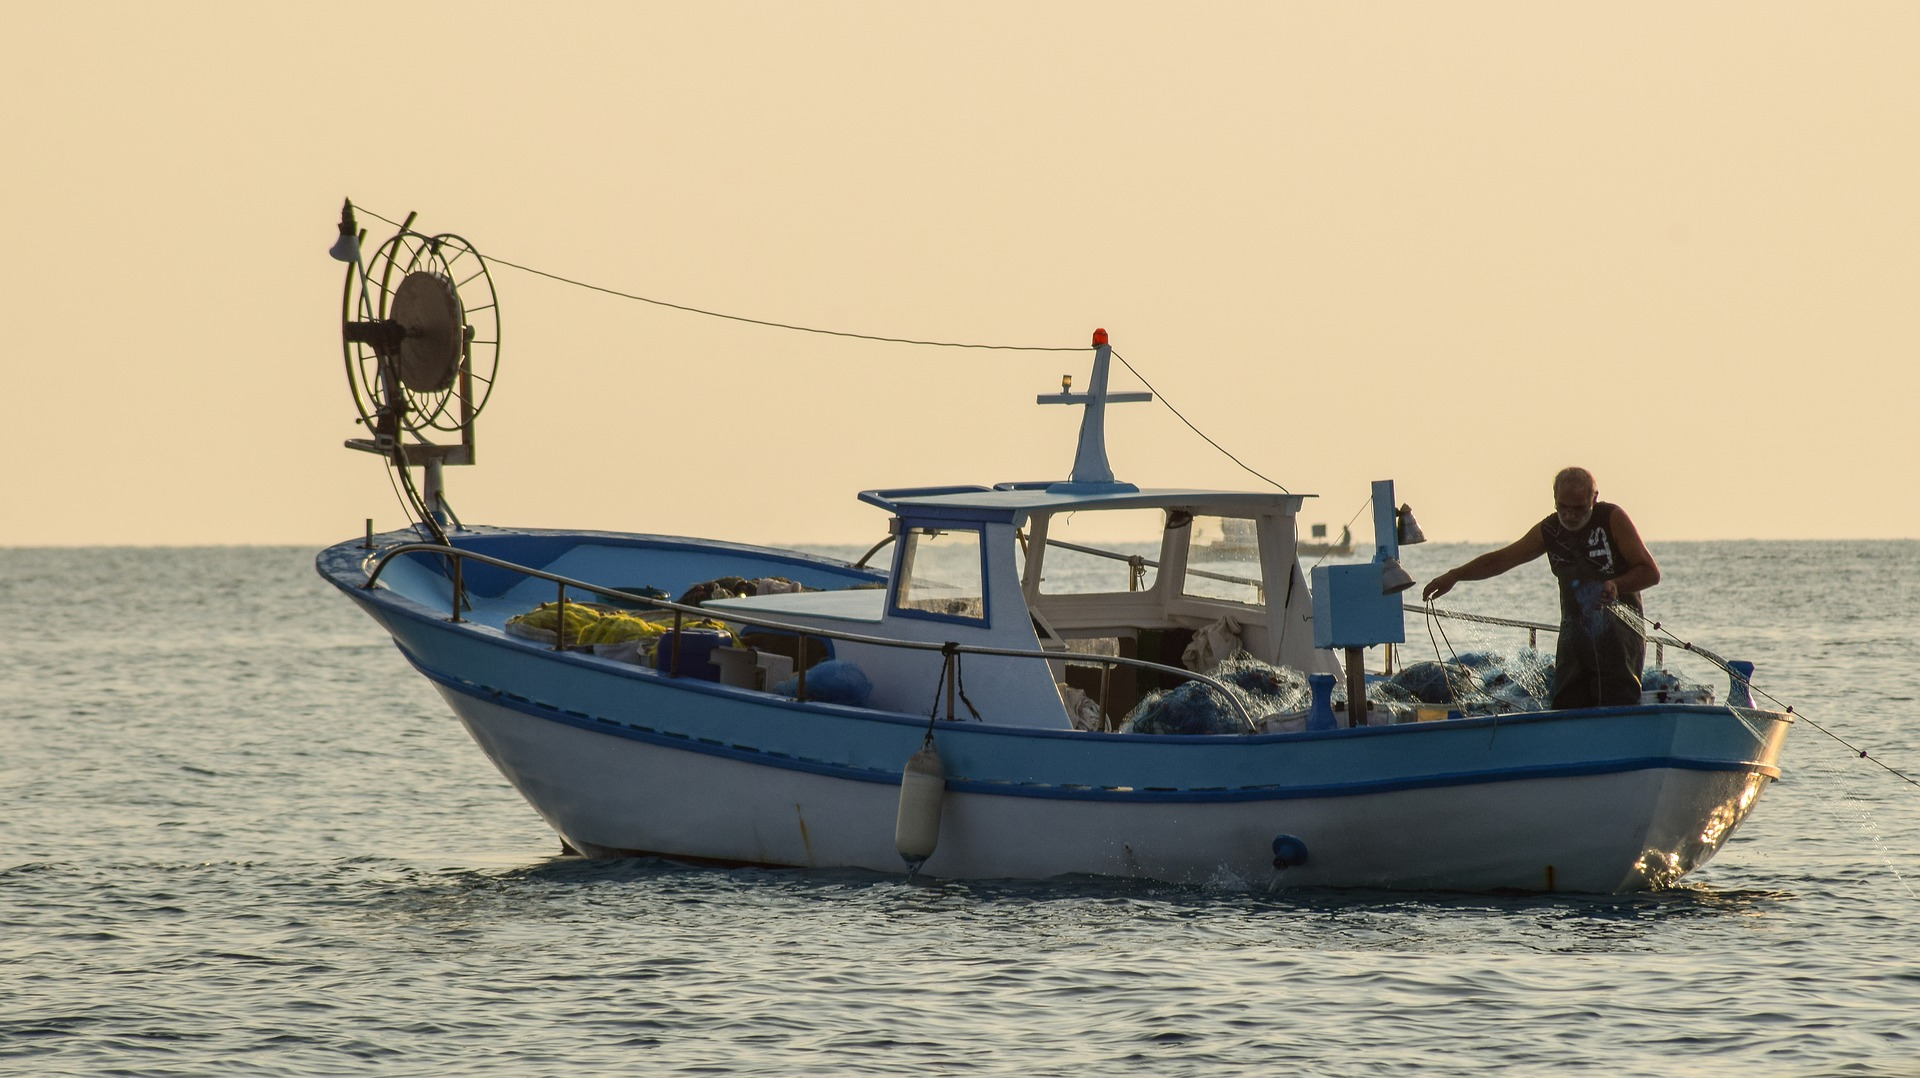 fishing-boat-5736837_1920.jpg